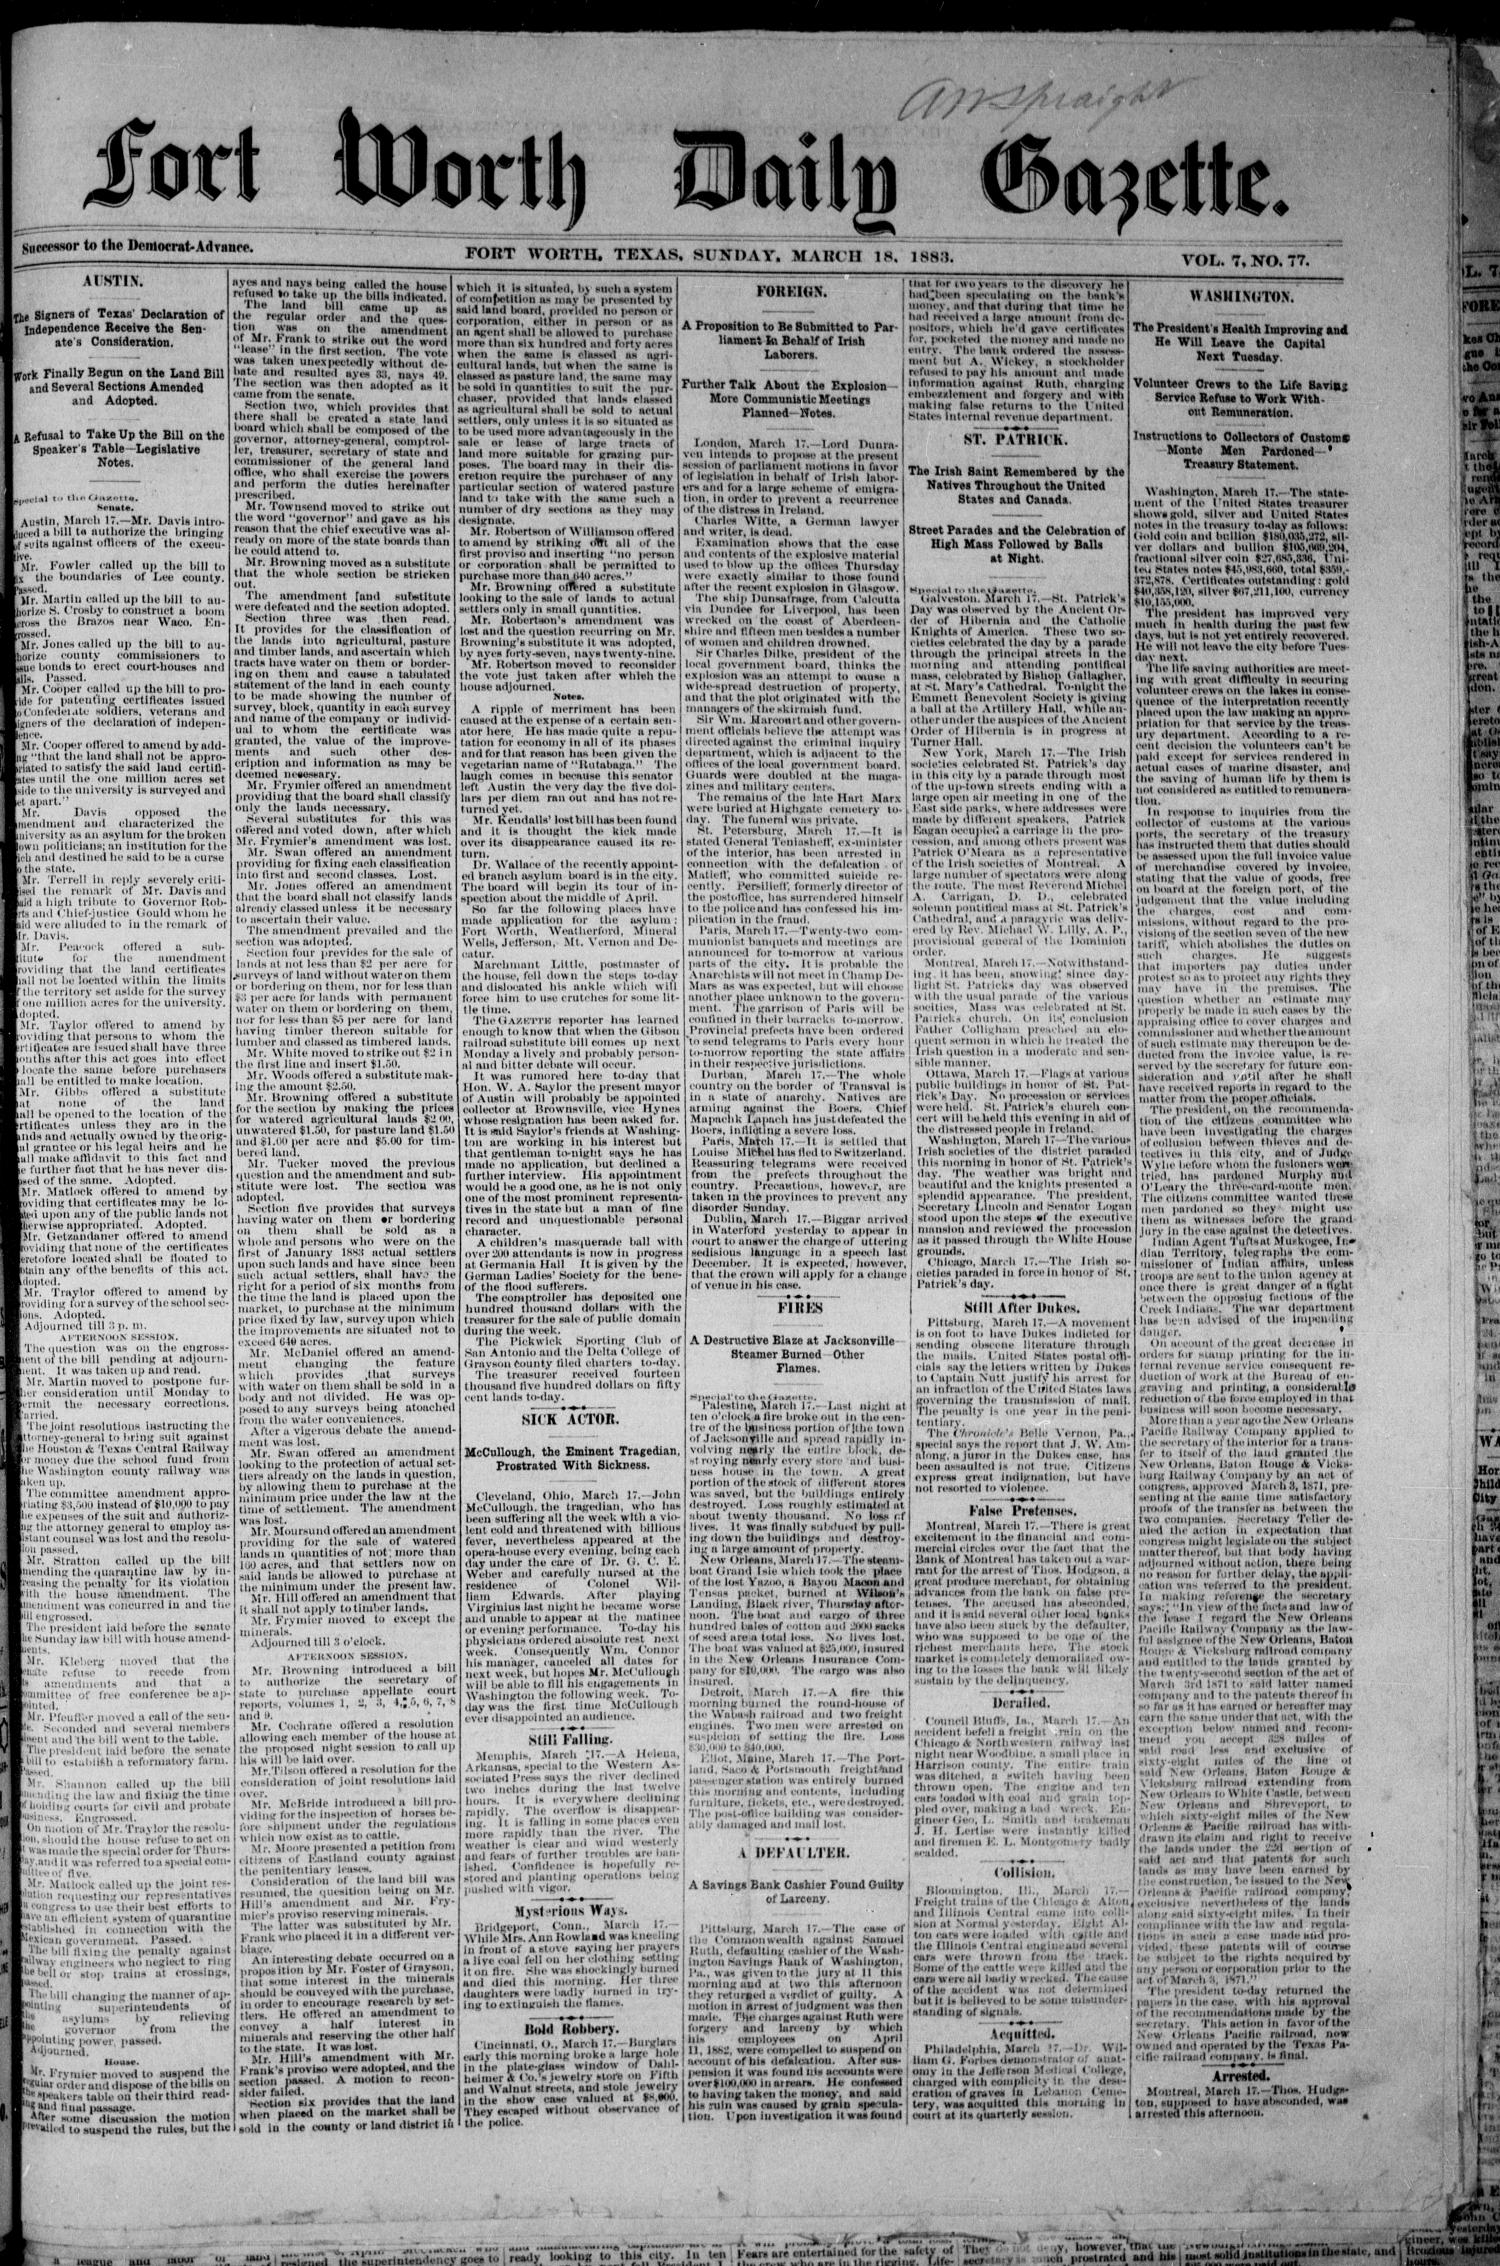 Fort Worth Daily Gazette. (Fort Worth, Tex.), Vol. 7, No. 77, Ed. 1, Sunday, March 18, 1883                                                                                                      [Sequence #]: 1 of 8